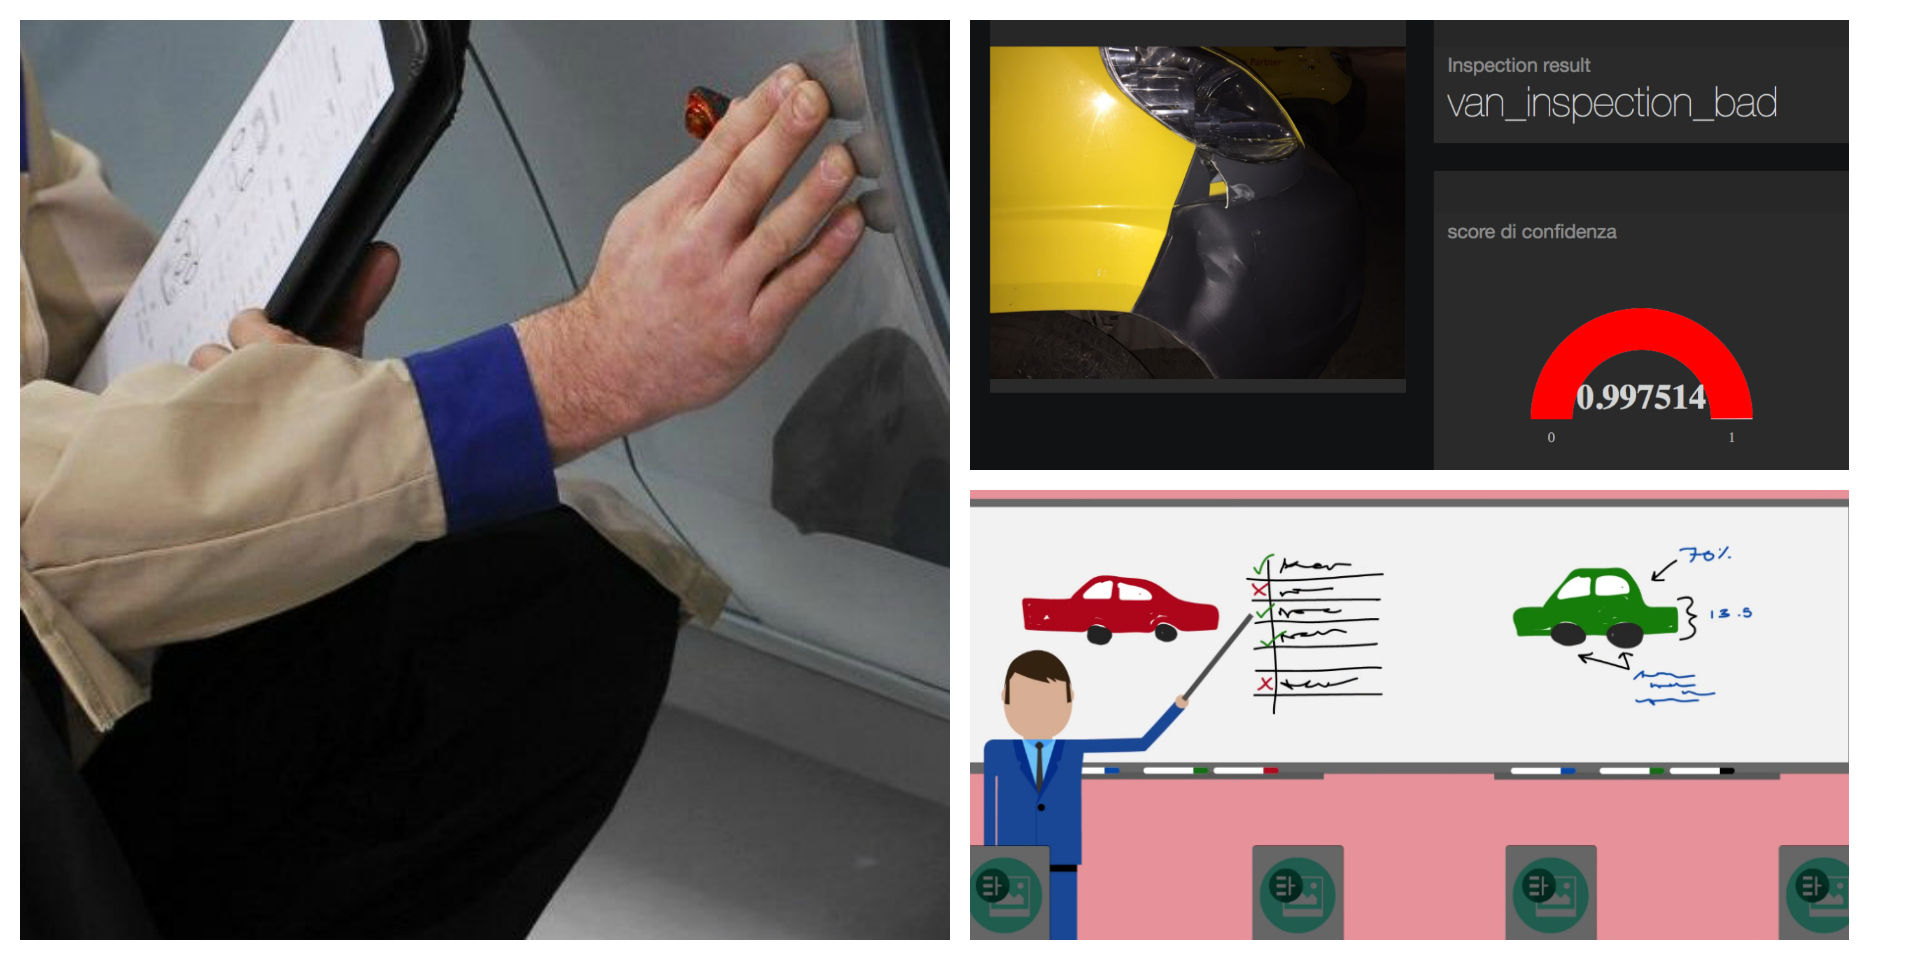 van inspection by Watson visual recognition